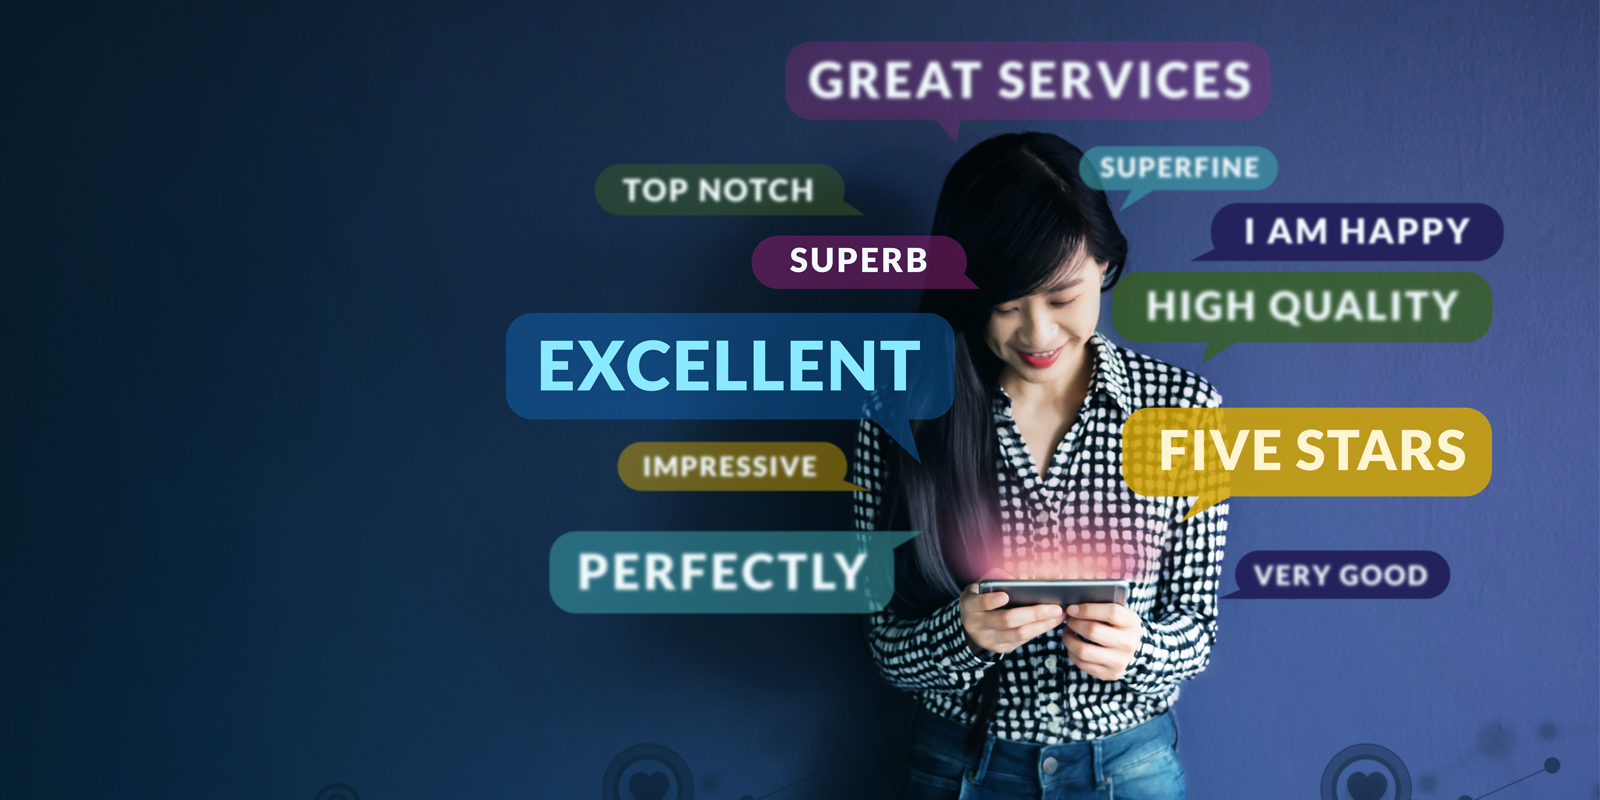 Importance of Online Reviews for the Hospitality Industry - MHL